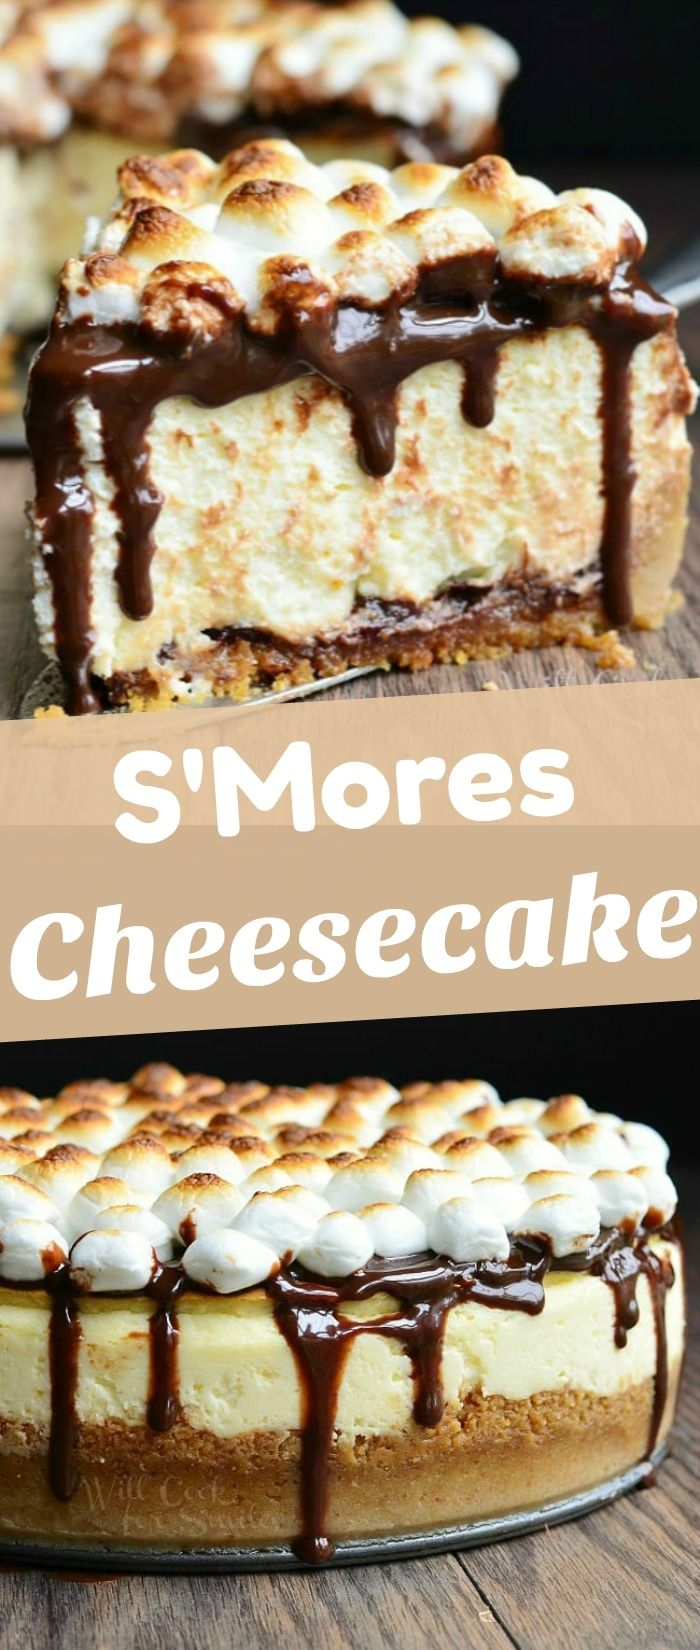 Amazing S Mores Cheesecake In 2020 Cheesecake Recipes Fun Cheesecake Recipes Cheesecake Recipes Classic